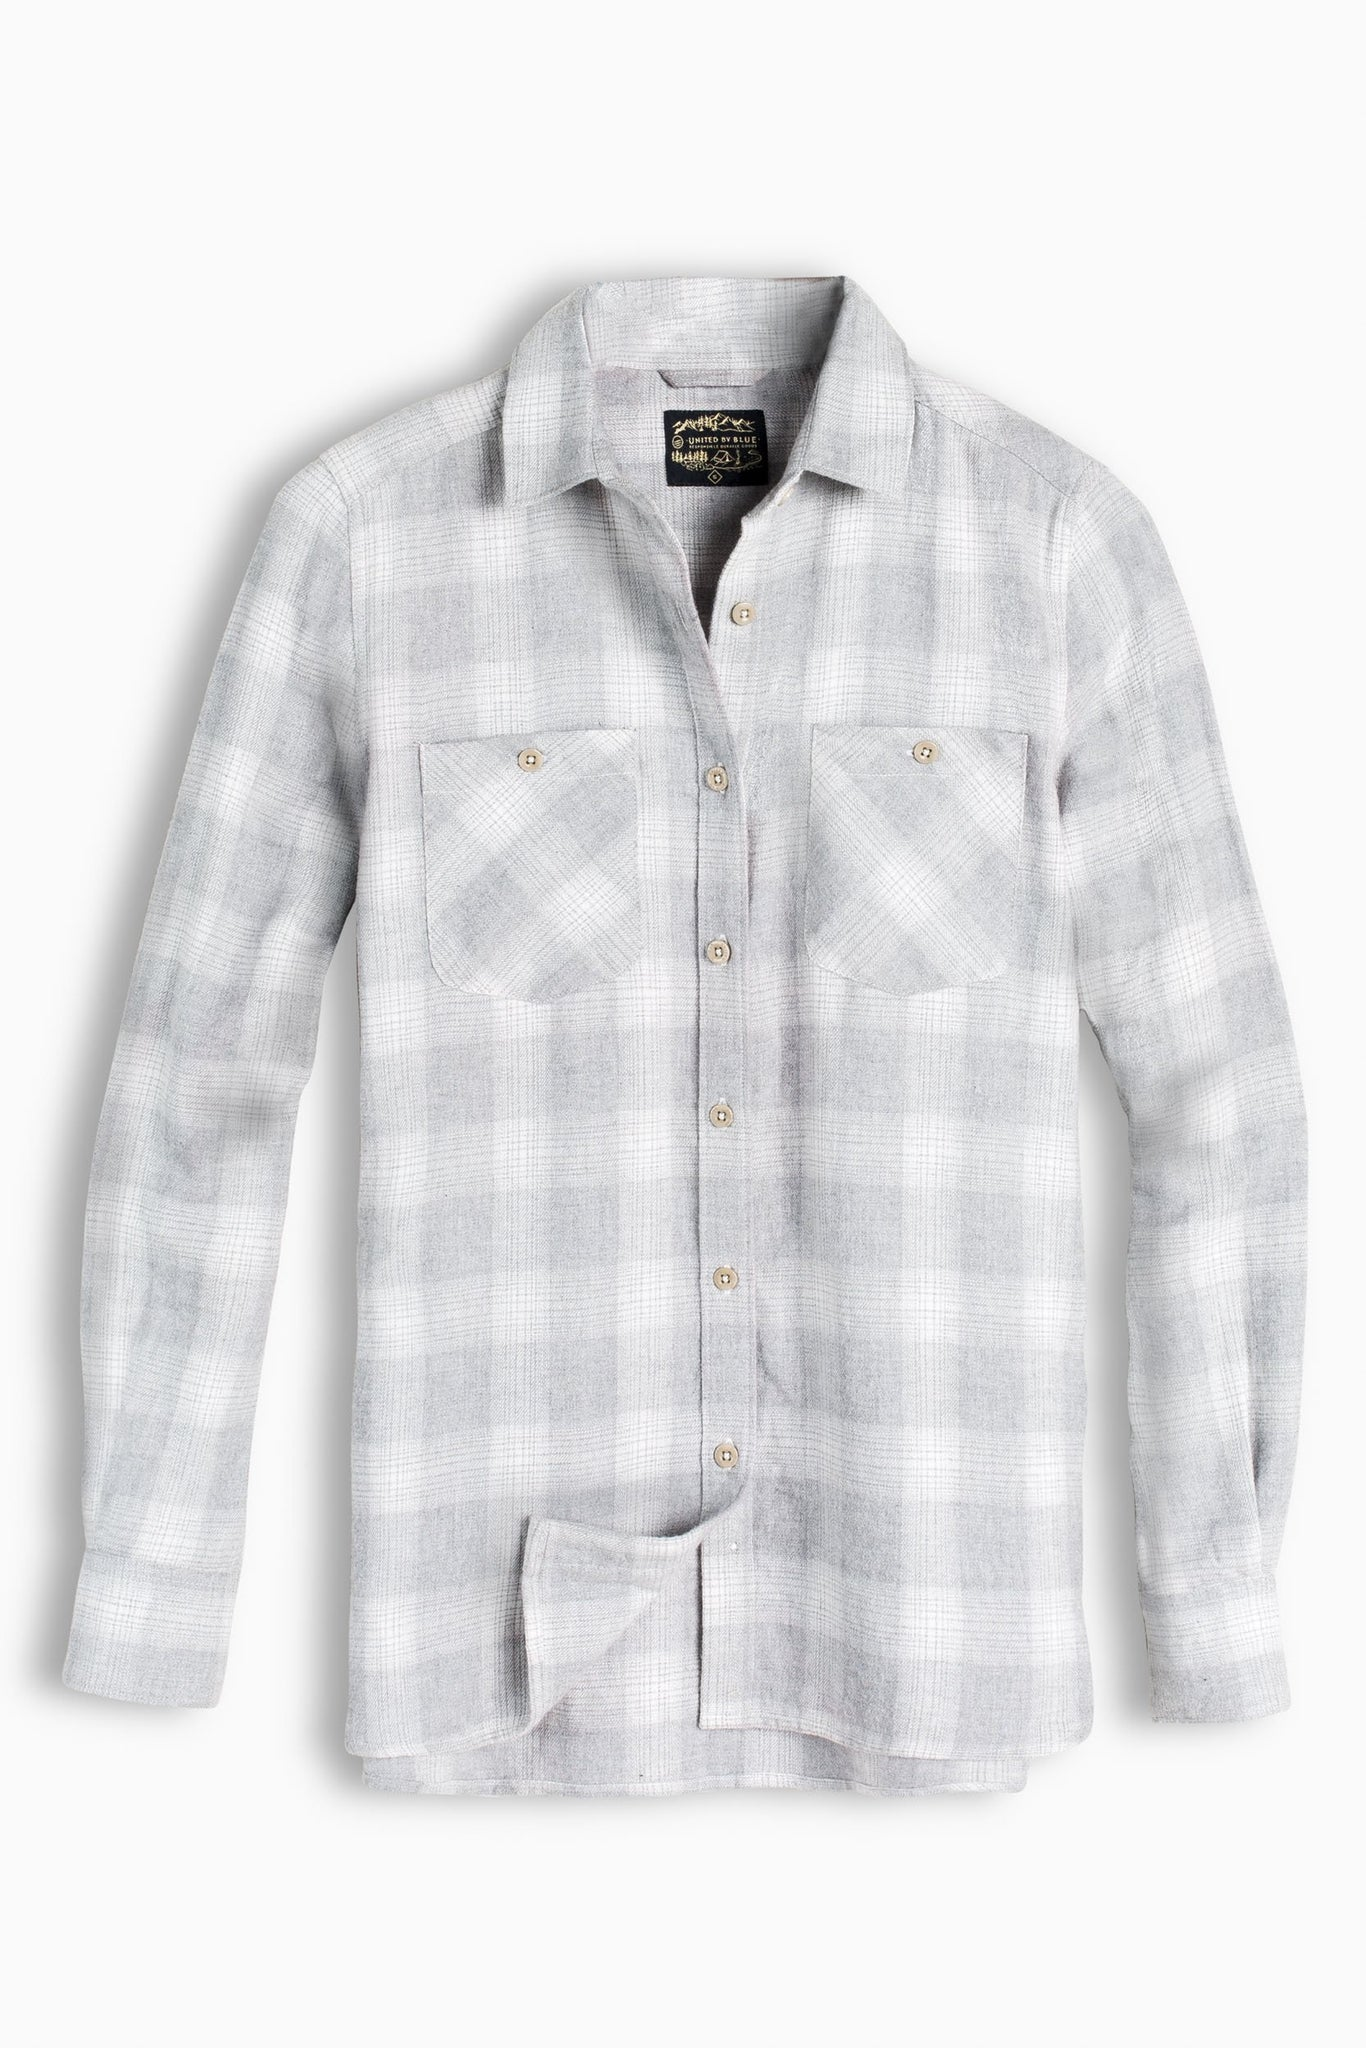 United By Blue Brinton Plaid Shirt